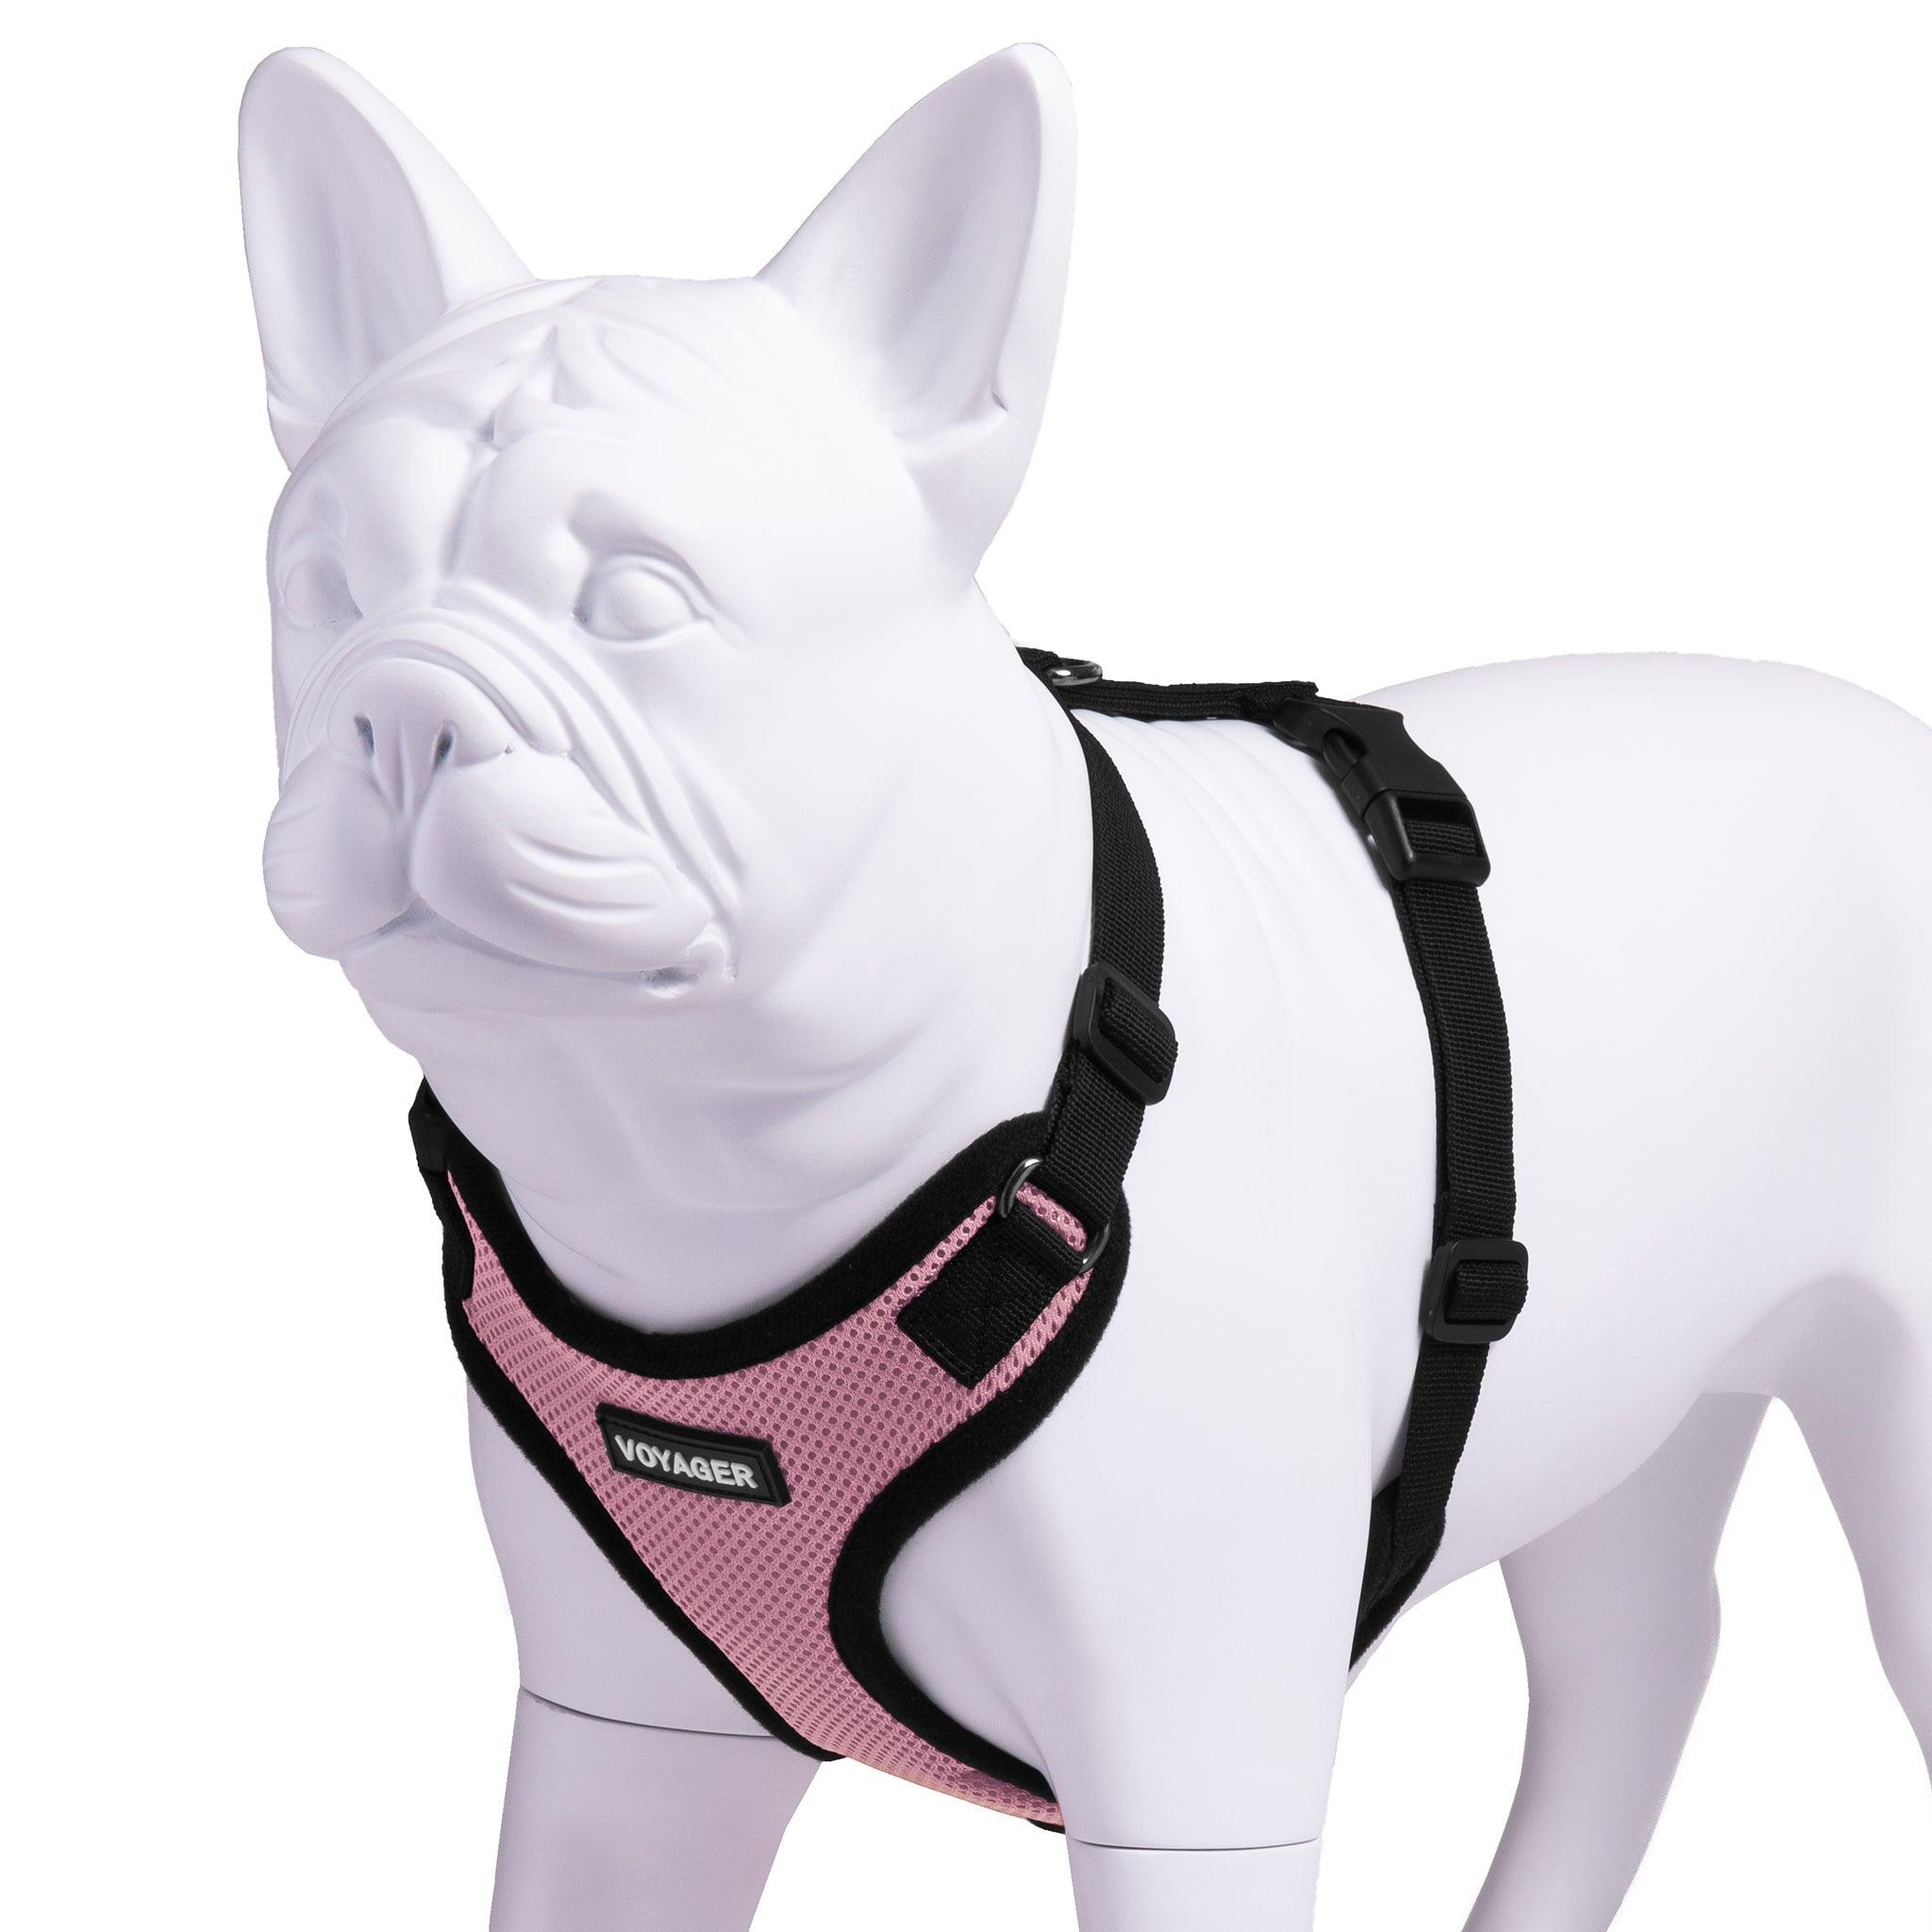 VOYAGER Step-In Lock Dog Harness in Pink with Black Trim and Webbing - Expanded